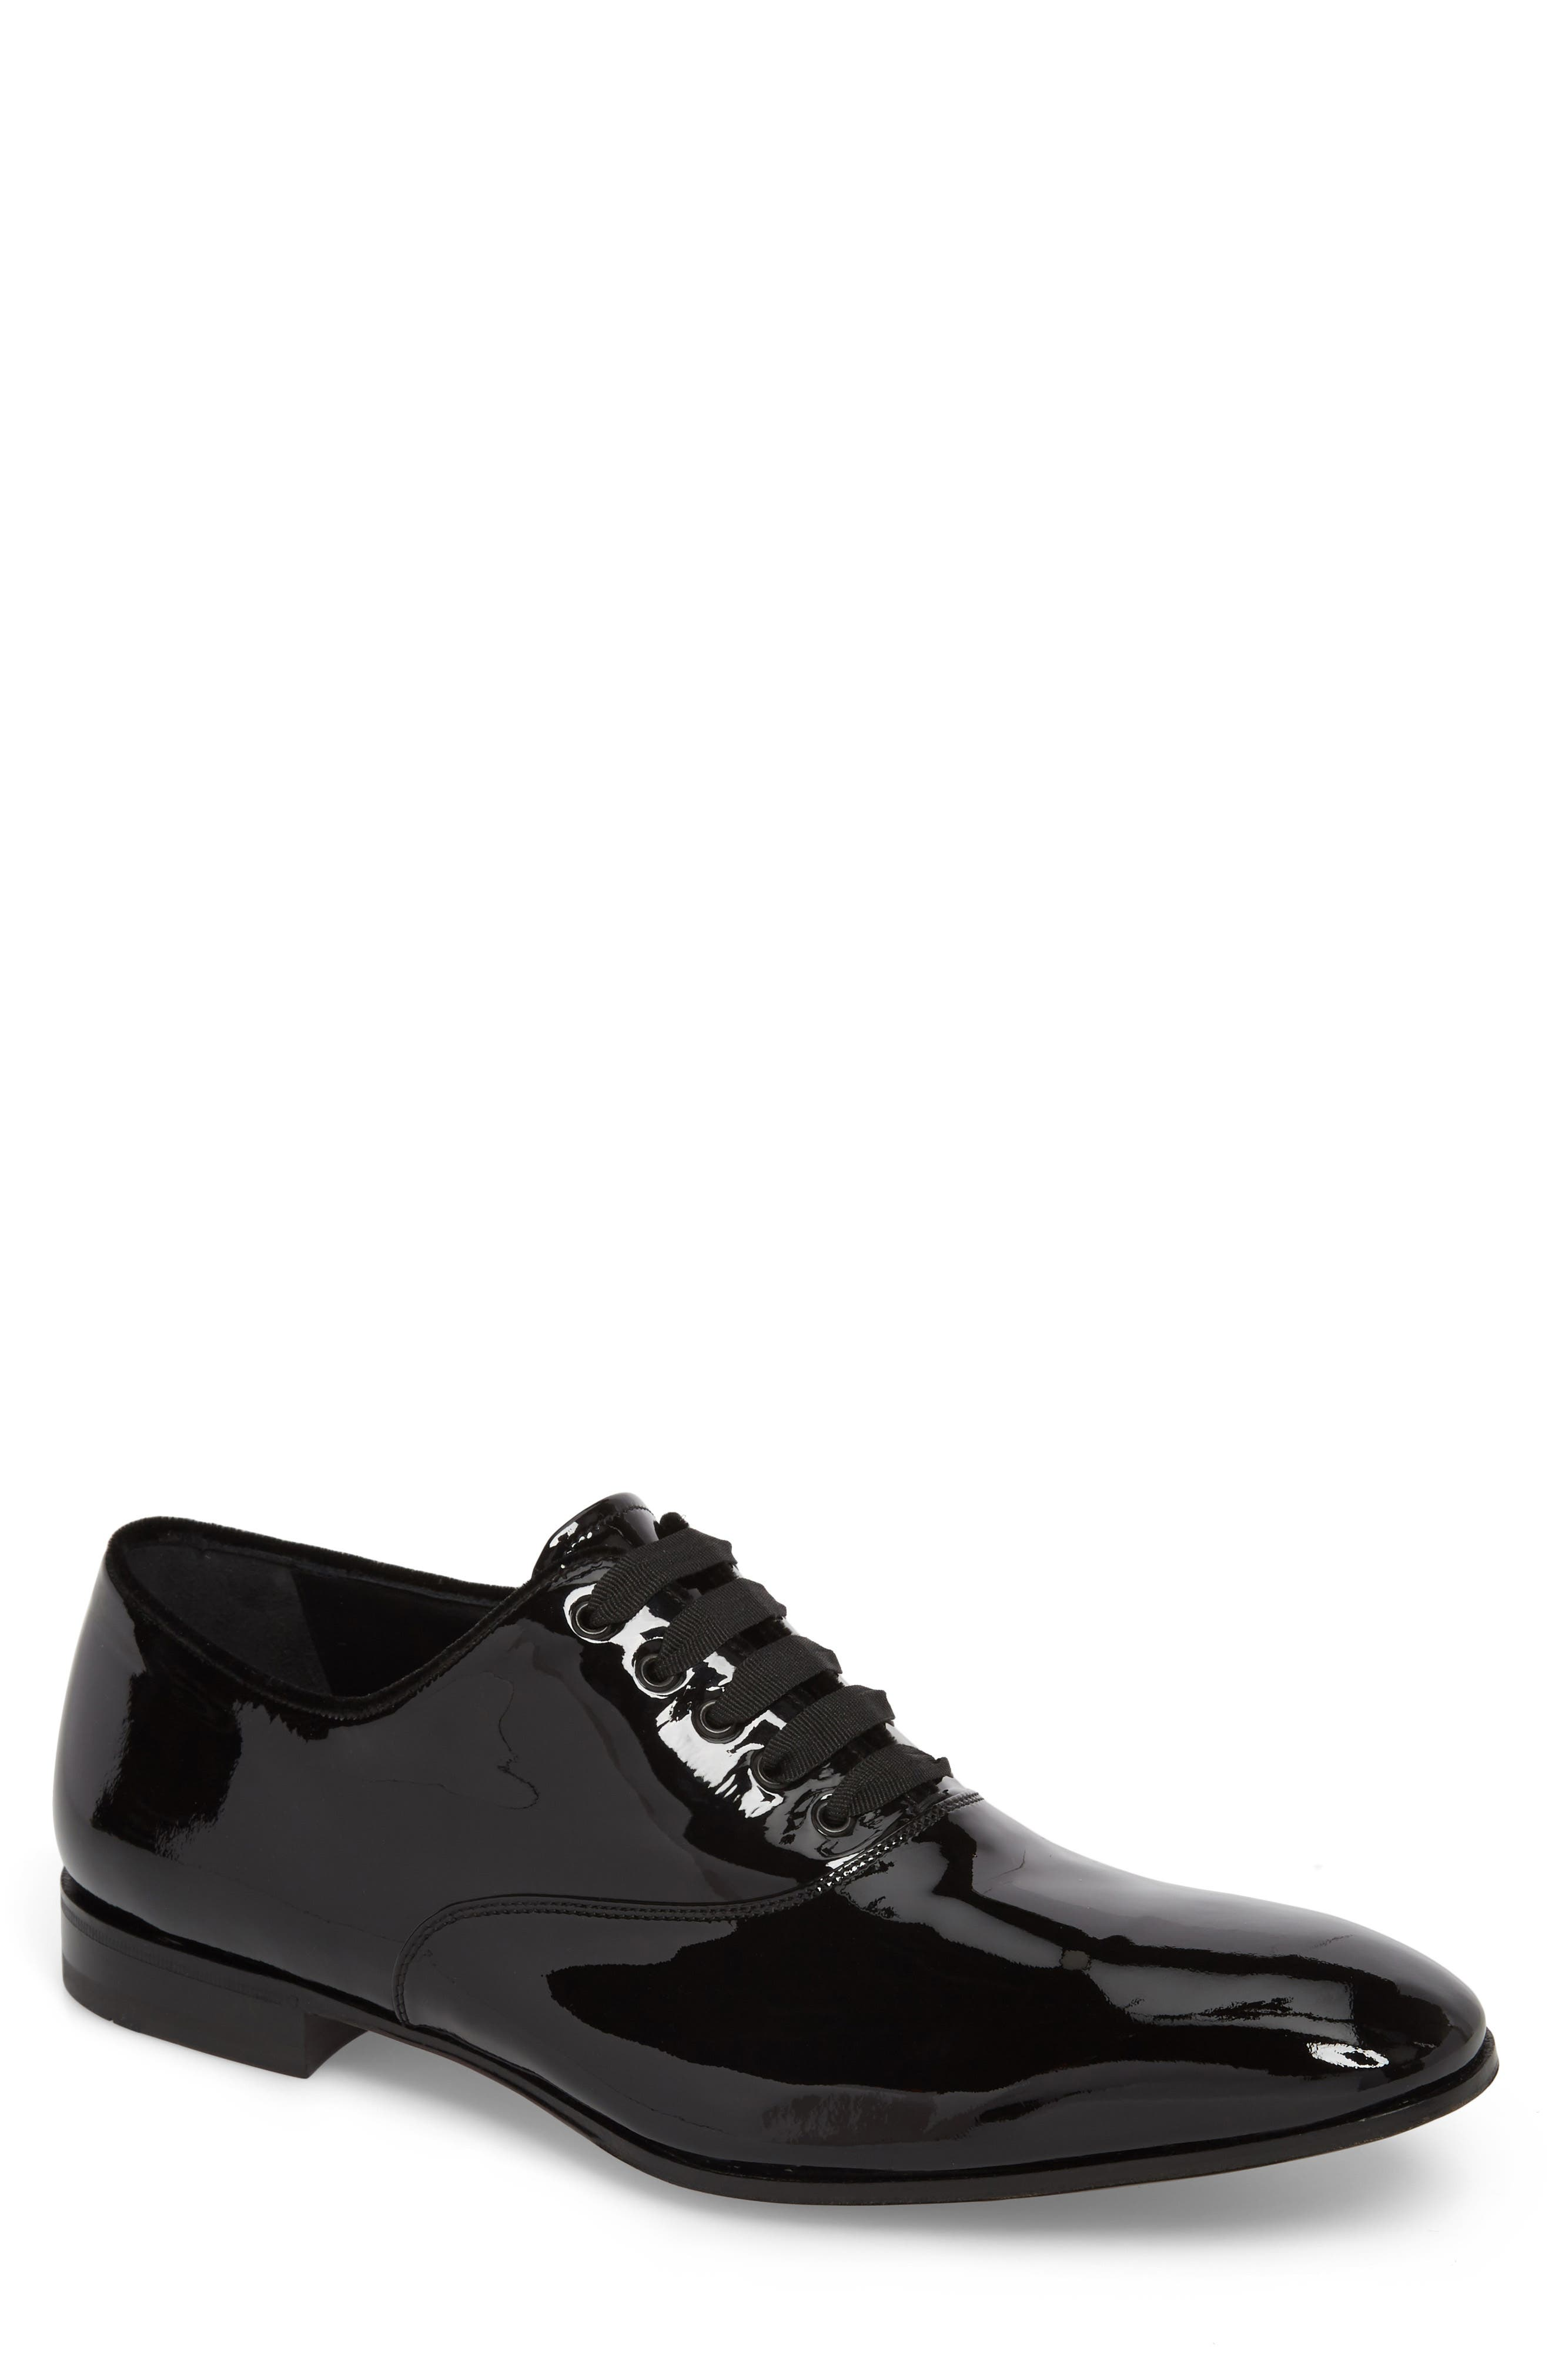 Belshaw Patent Oxford,                             Main thumbnail 1, color,                             NERO PATENT LEATHER